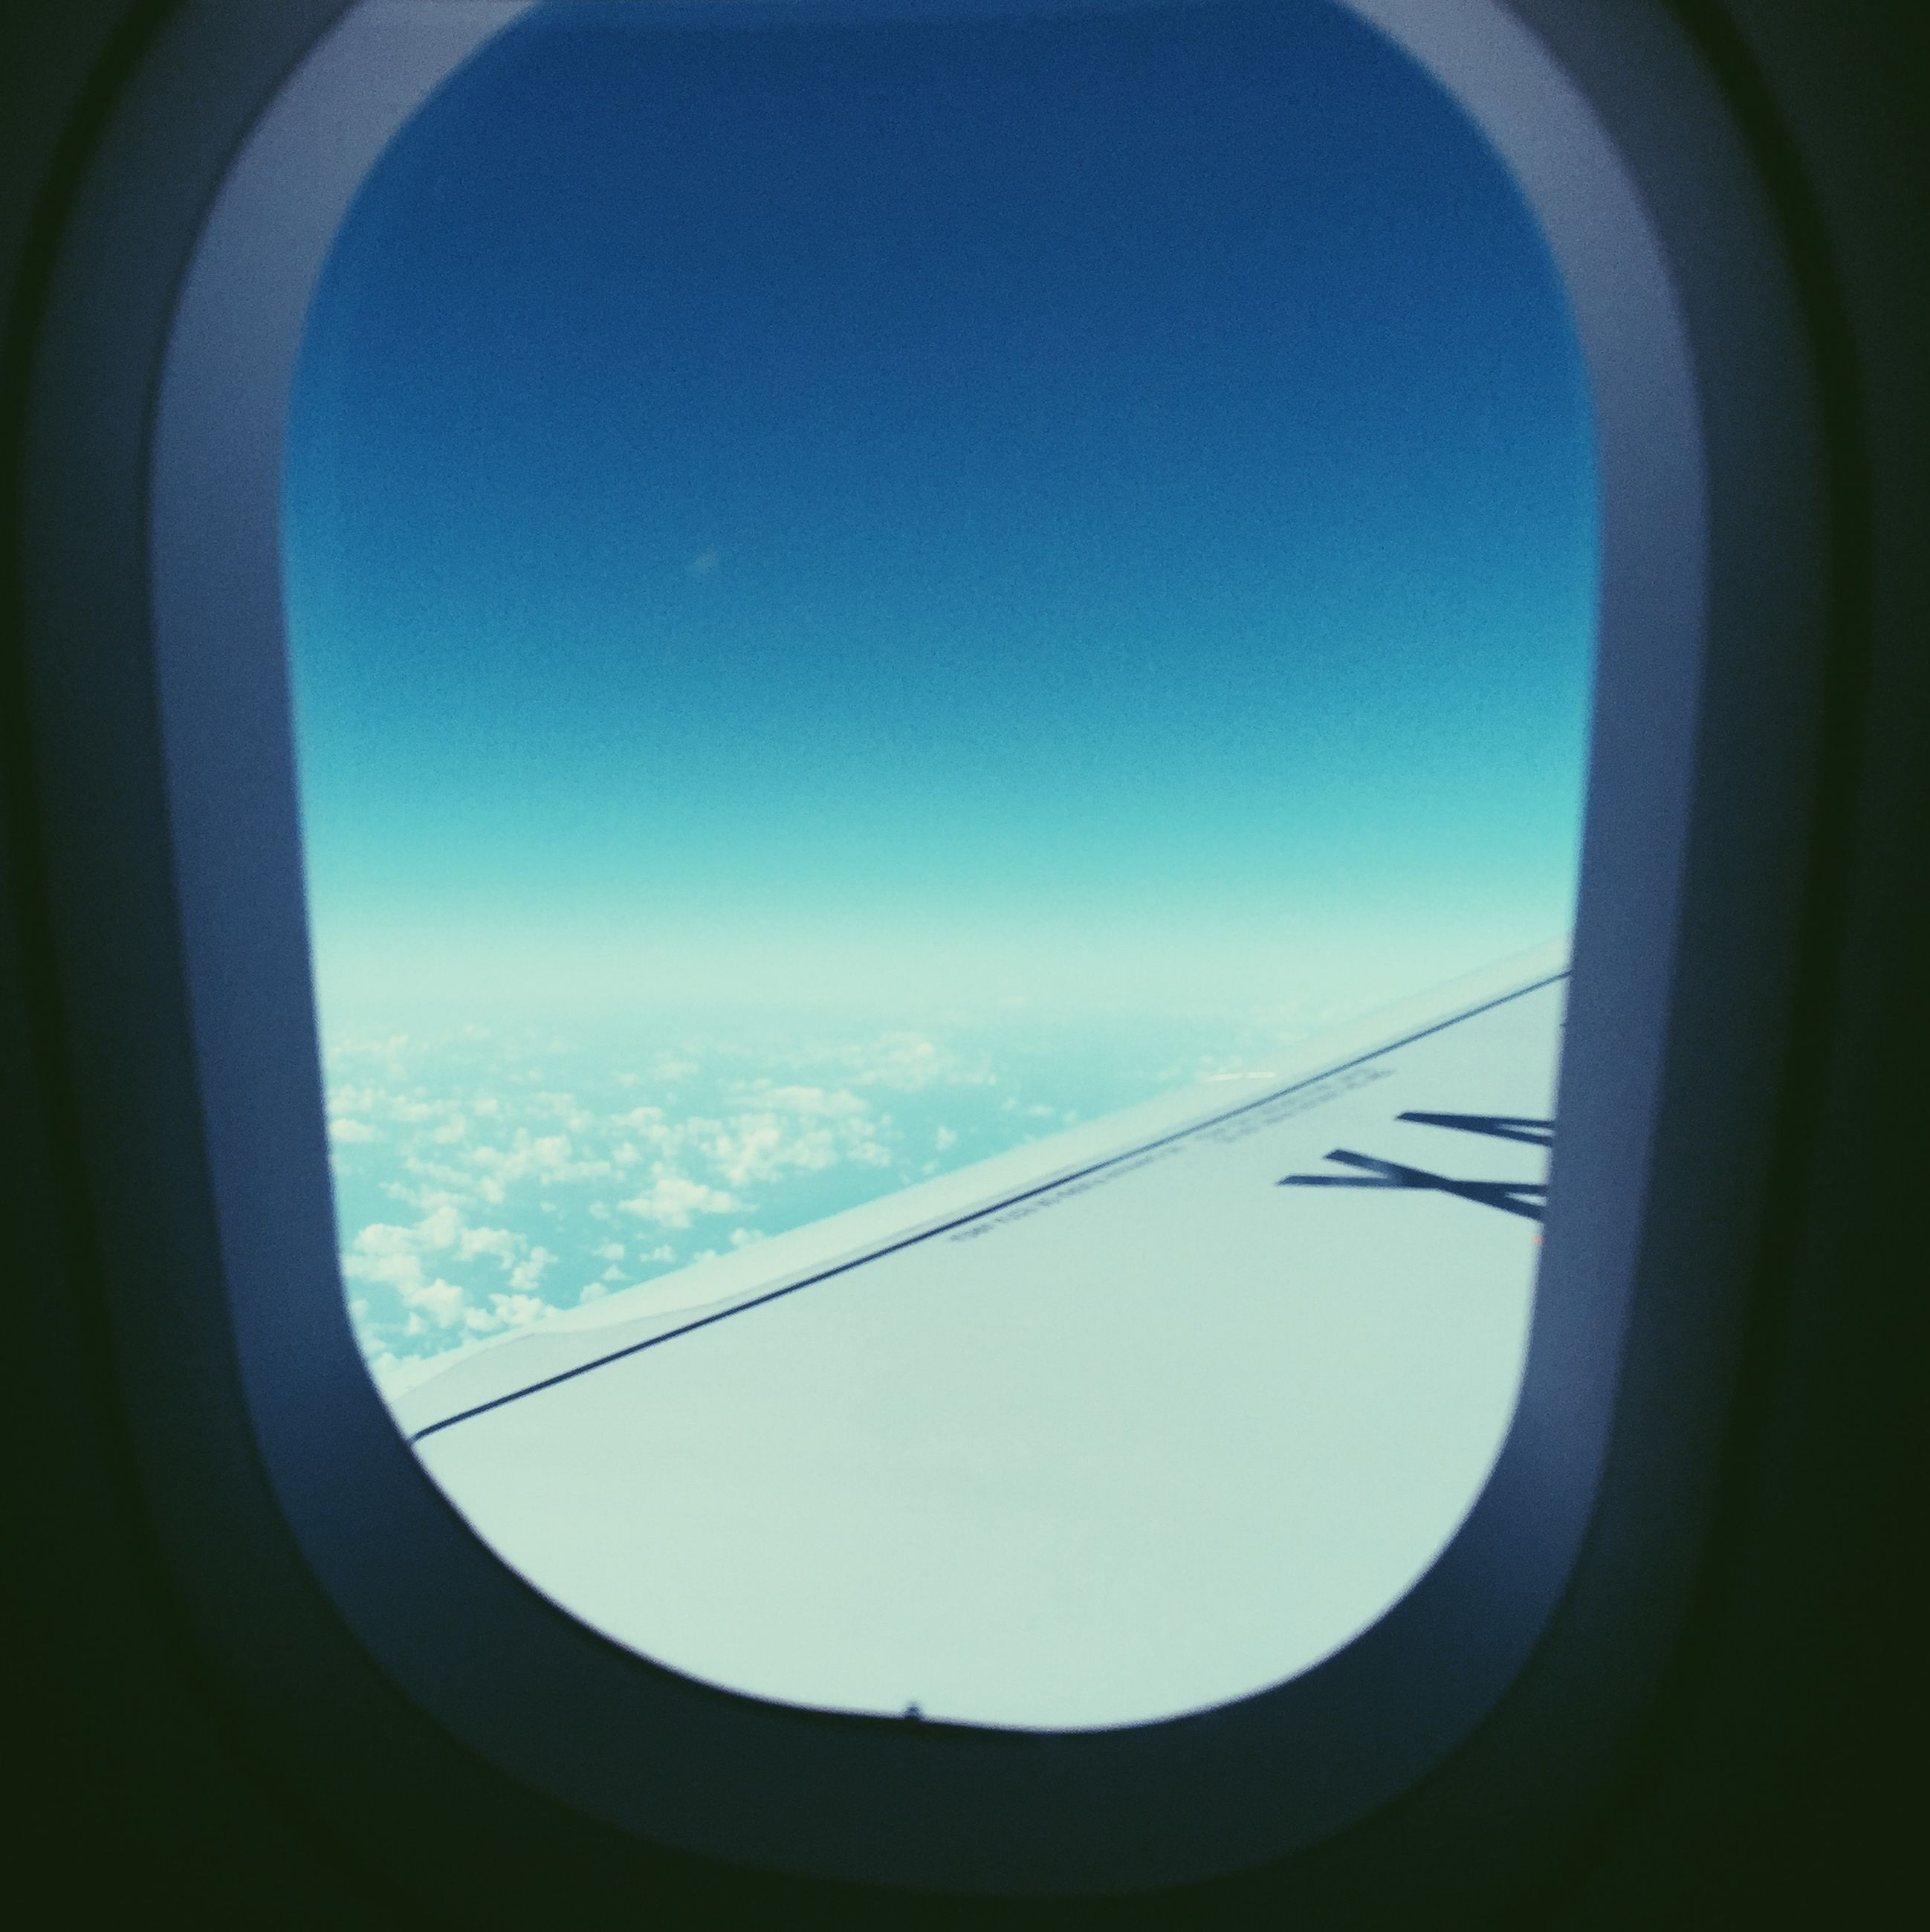 window, low angle view, transportation, indoors, glass - material, sky, transparent, clear sky, built structure, blue, part of, connection, airplane, architecture, copy space, no people, vehicle interior, cropped, day, flying